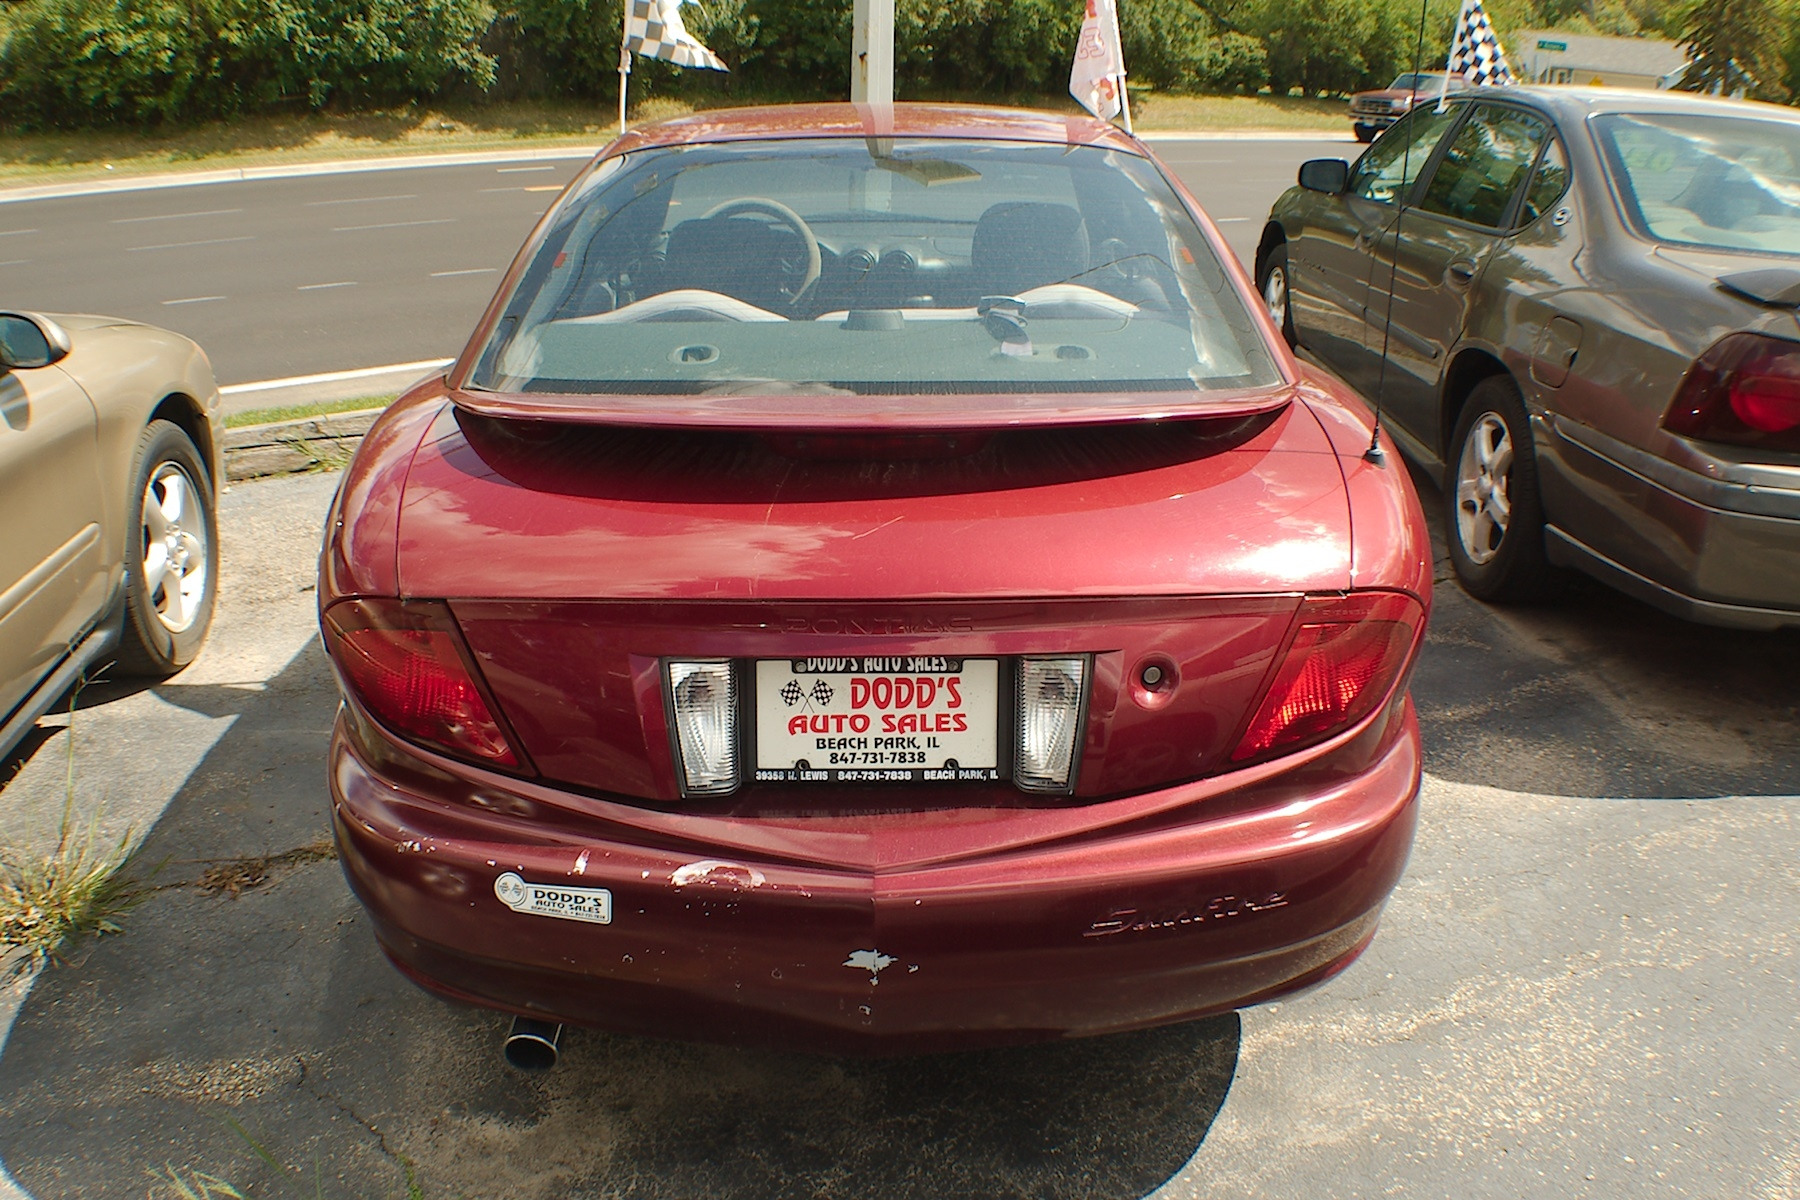 2005 Pontiac Sunfire Burgundy Sedan Used Car Sale Buffalo Grove Deerfield Fox Lake Antioch